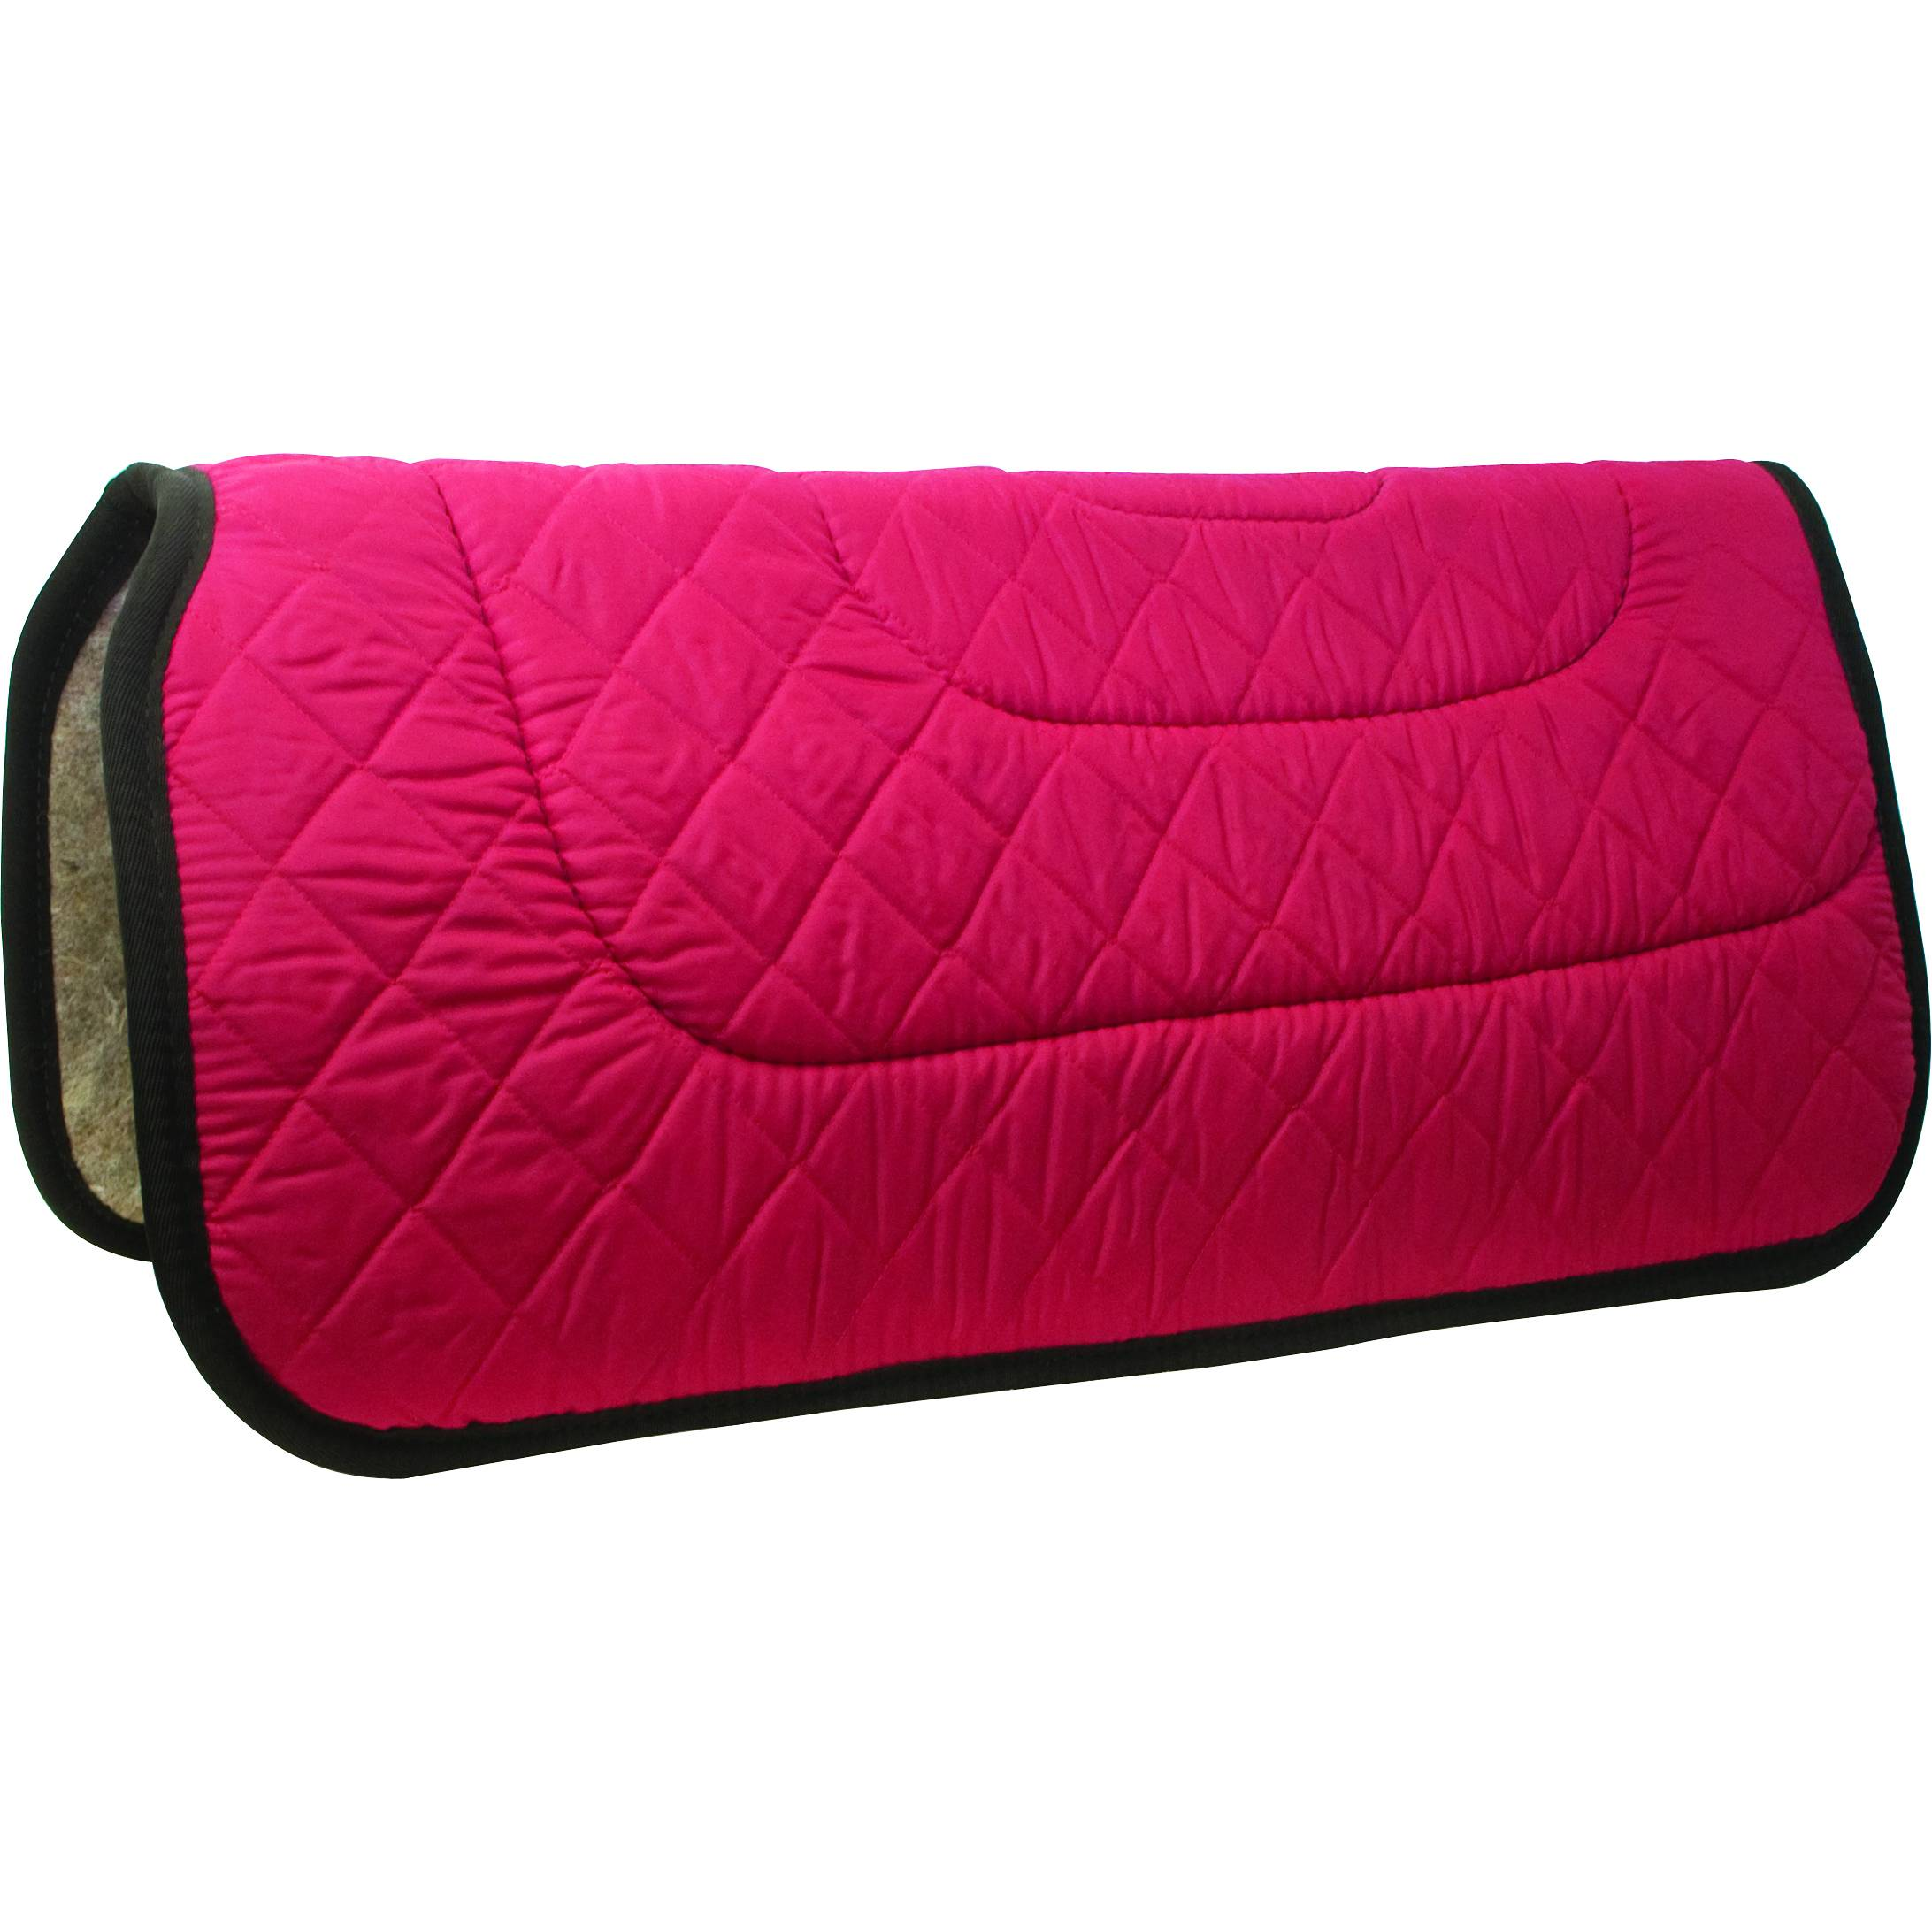 Abetta Quilted Saddle Pad